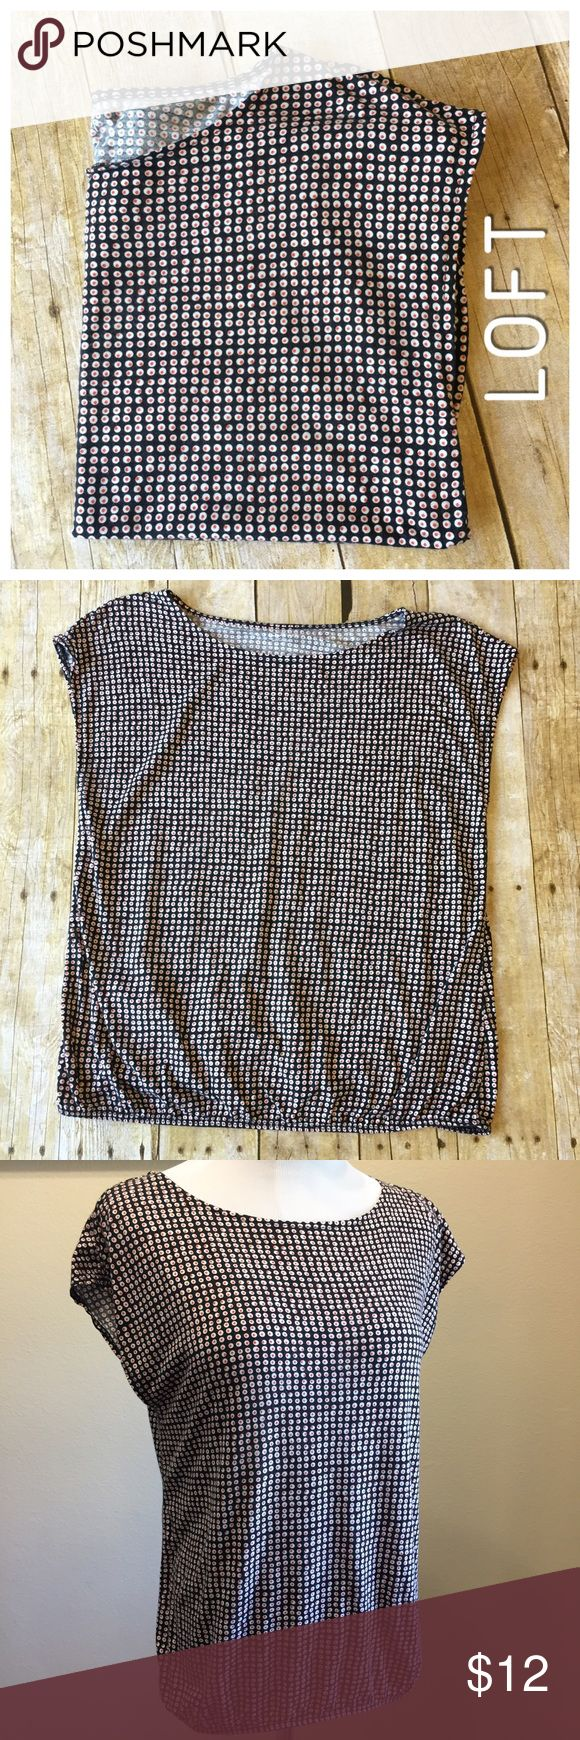 """LOFT Petite Tee Mini Circles Print Short sleeve Great tee for work or every day wear. Very versatile. 23"""" long. Great condition, smoke free home, no pilling. 18.5"""" armpit to armpit. Machine wash rayon/tencel blend. Ann Taylor LOFT LOFT Tops Blouses"""